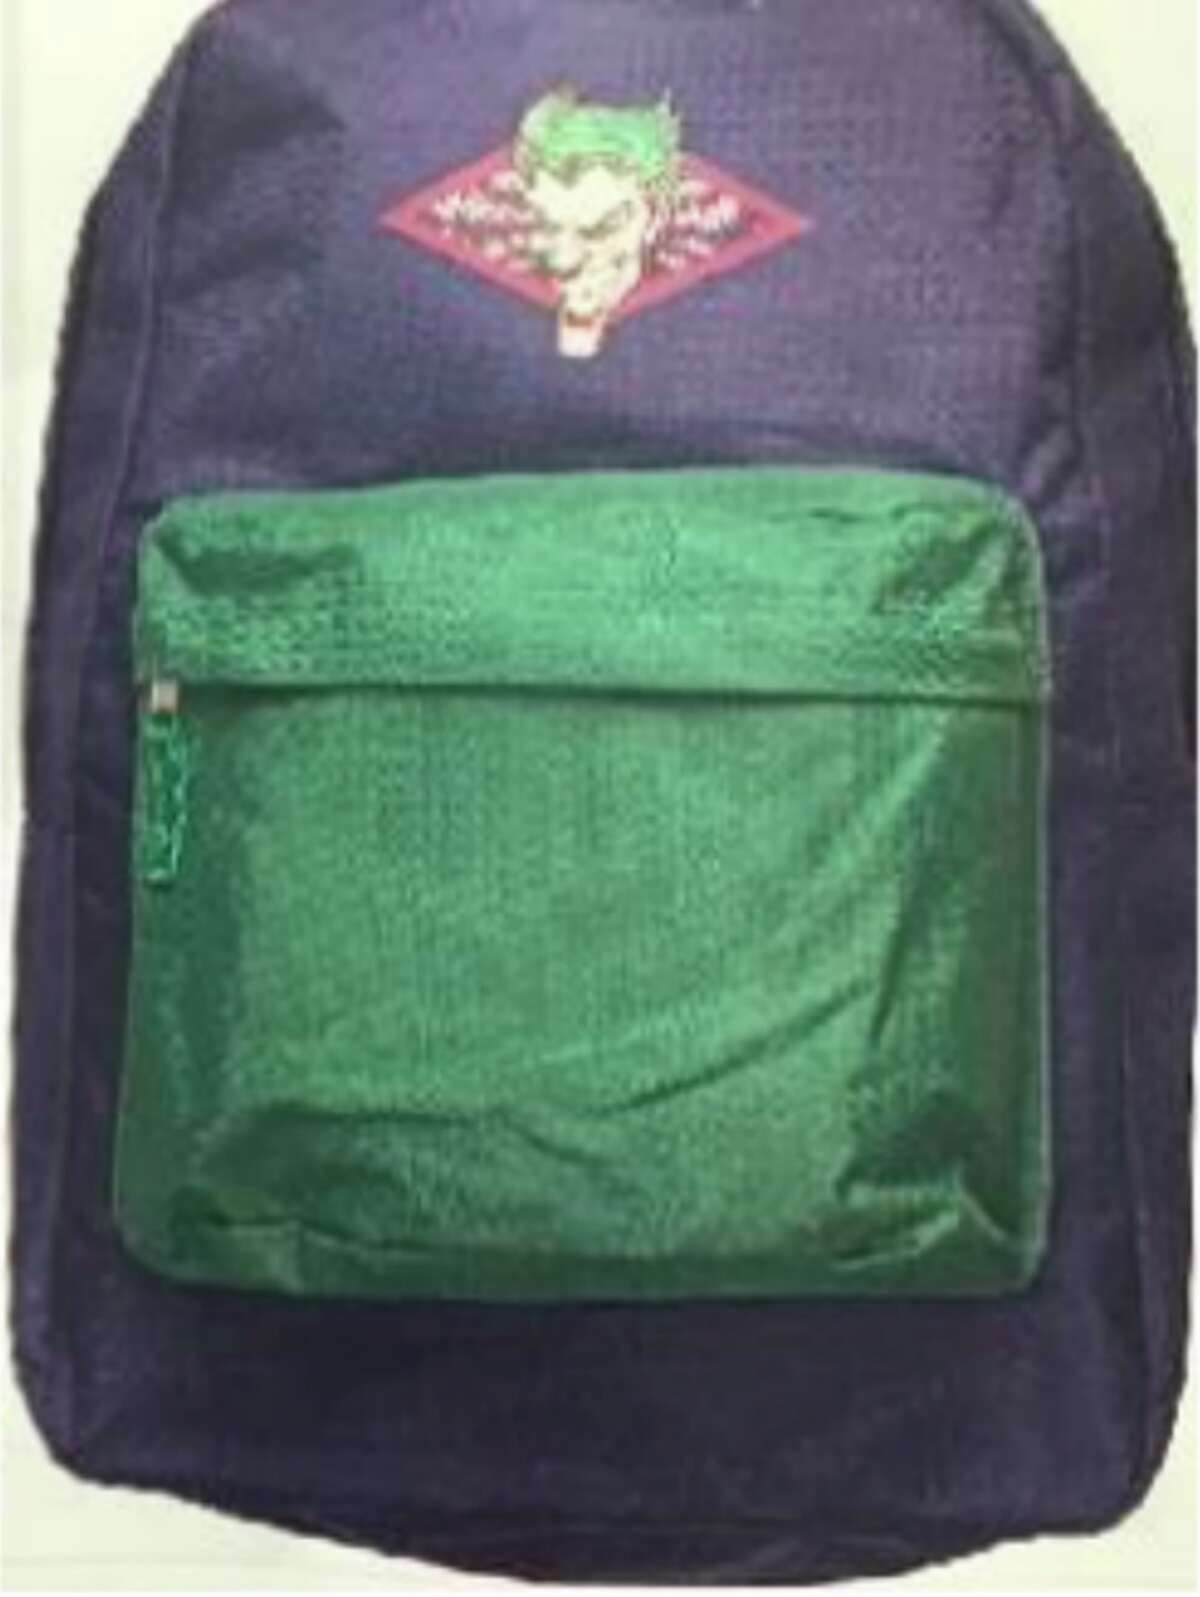 The Solano County Sheriff's Office put out a picture of a backpack similar to the one Pearl Pinson, 15, was wearing when she was violently abducted on May 25 in Vallejo.